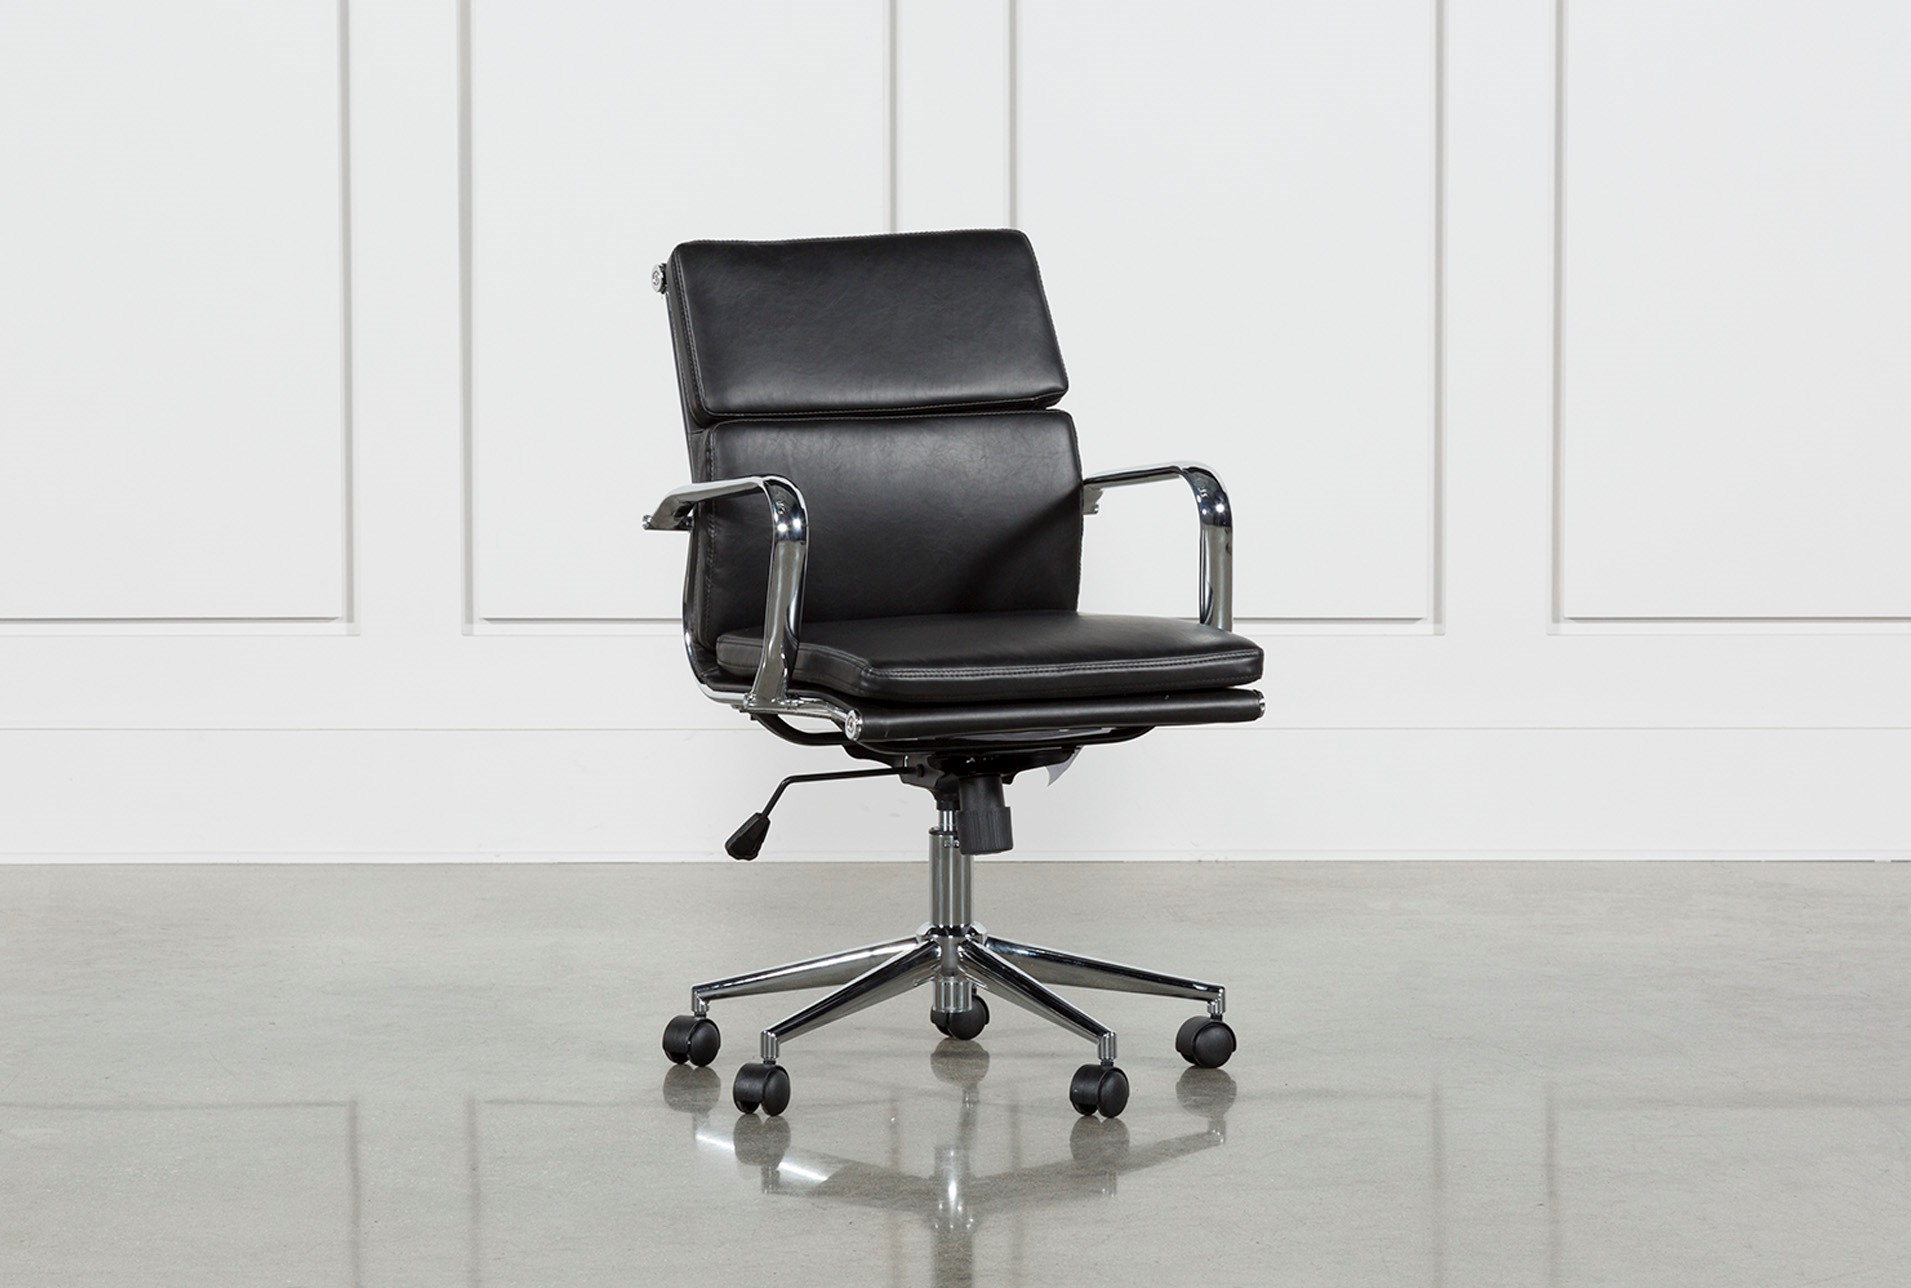 Moby Black Low Back Office Chair Qty 1 Has Been Successfully Added To Your Cart